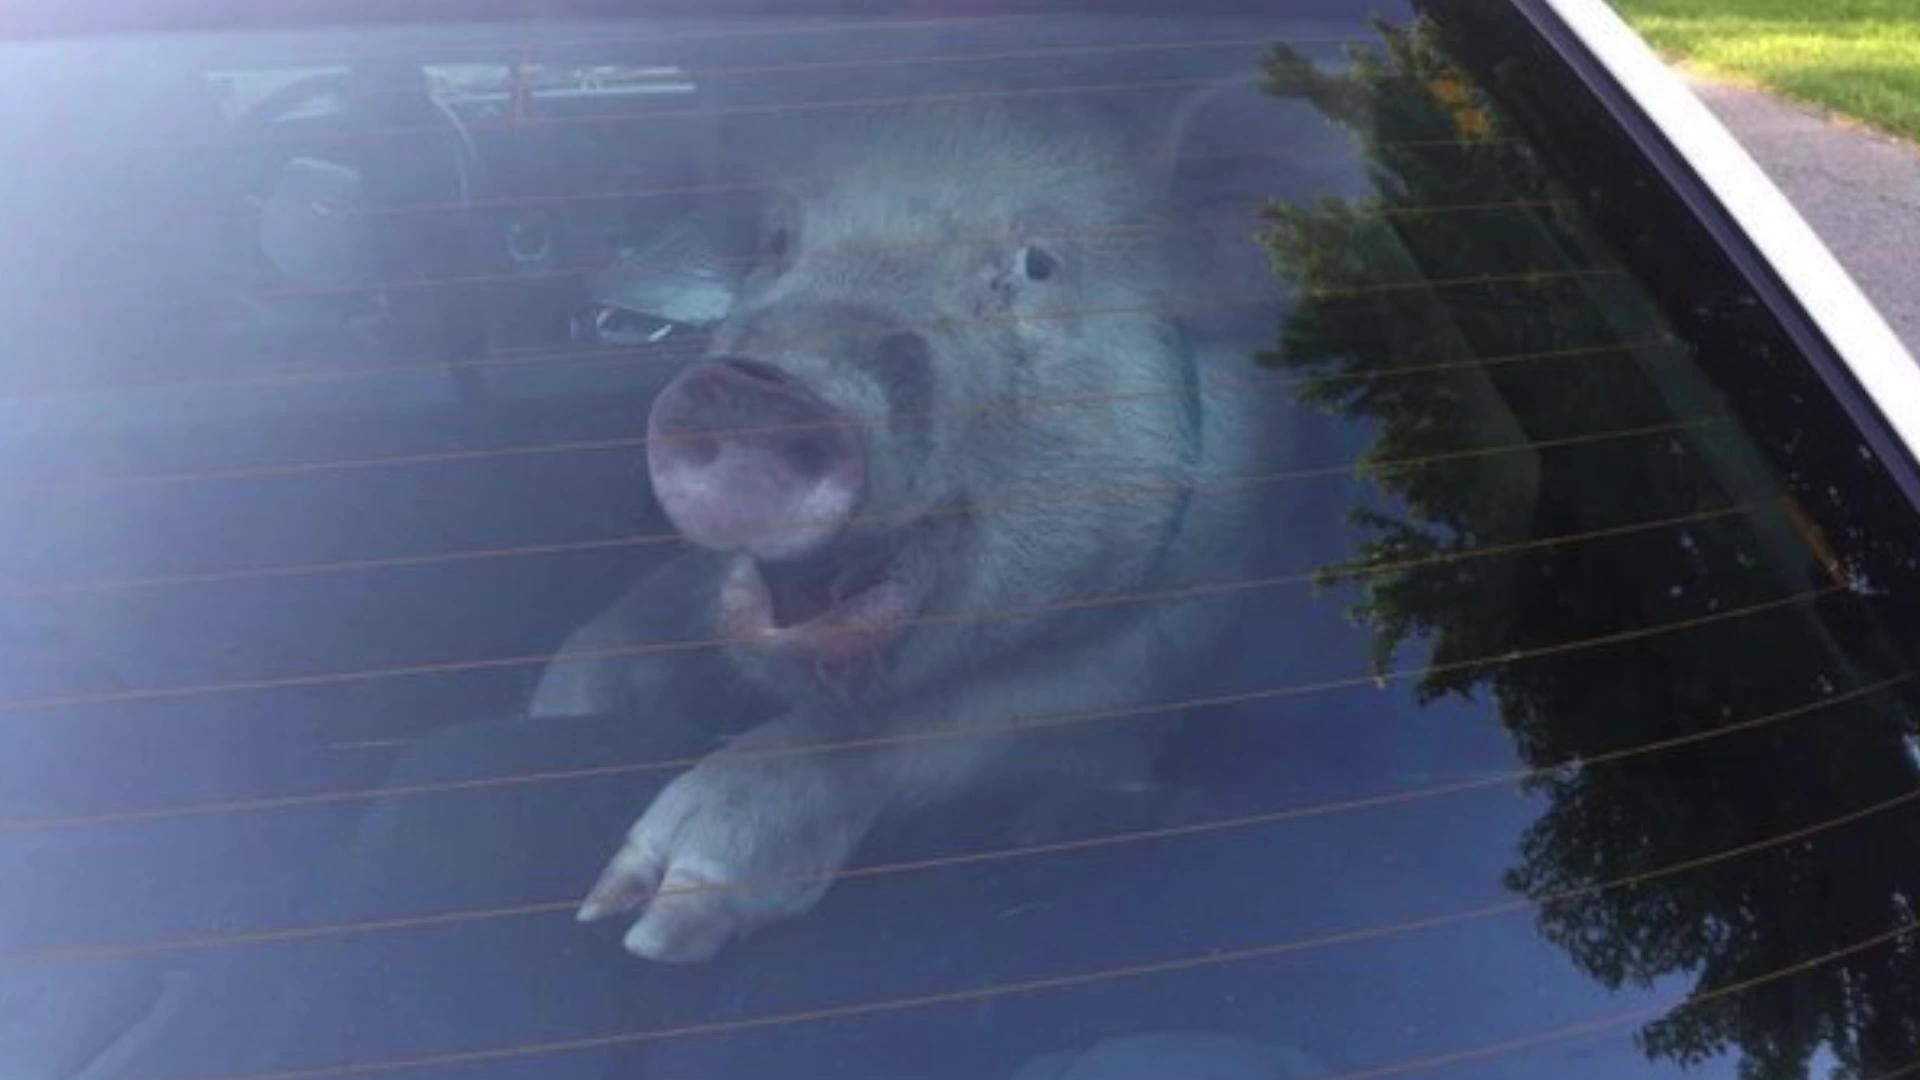 Pig turns cop car into pig pen